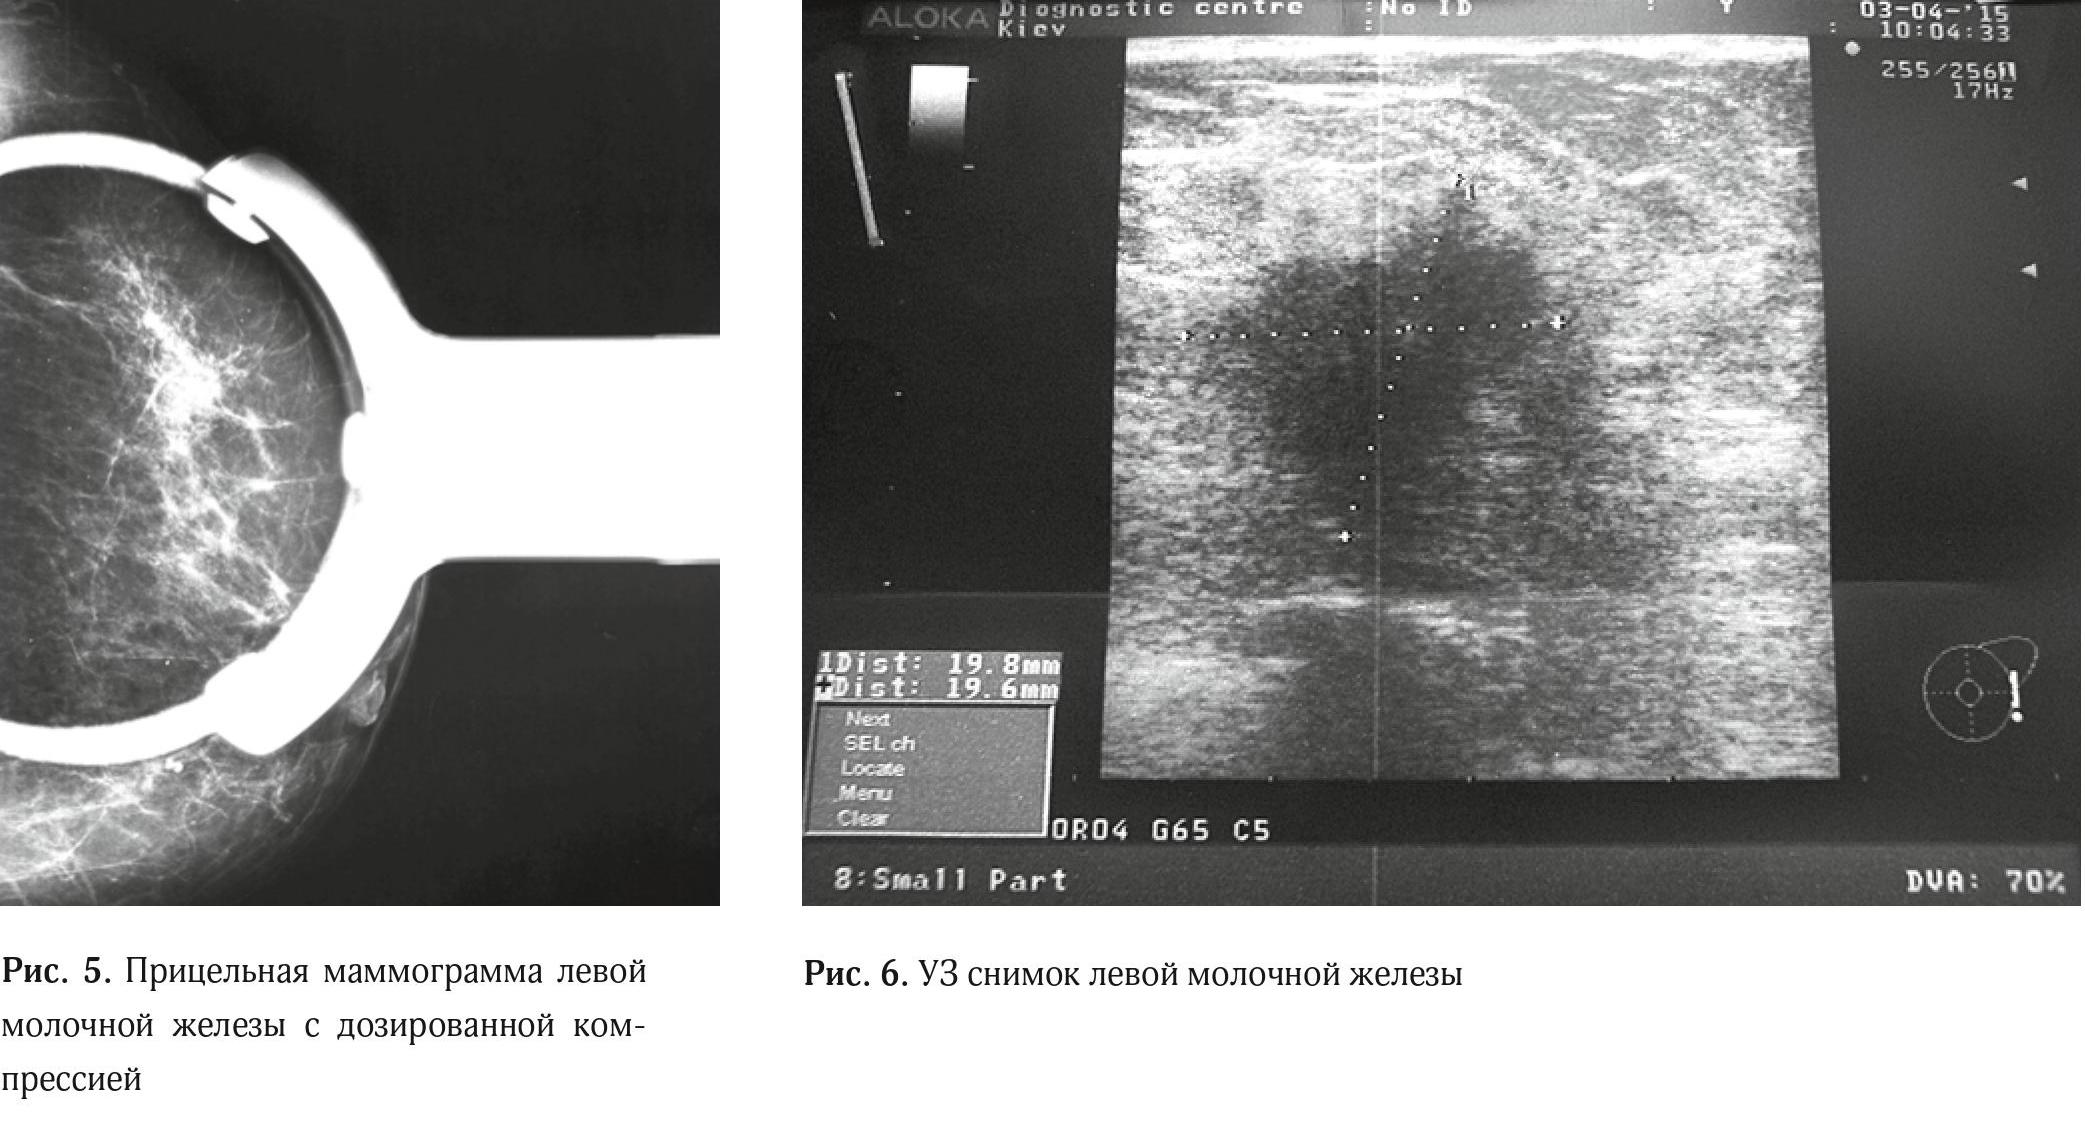 Clinical case granular cell tumor of breast3